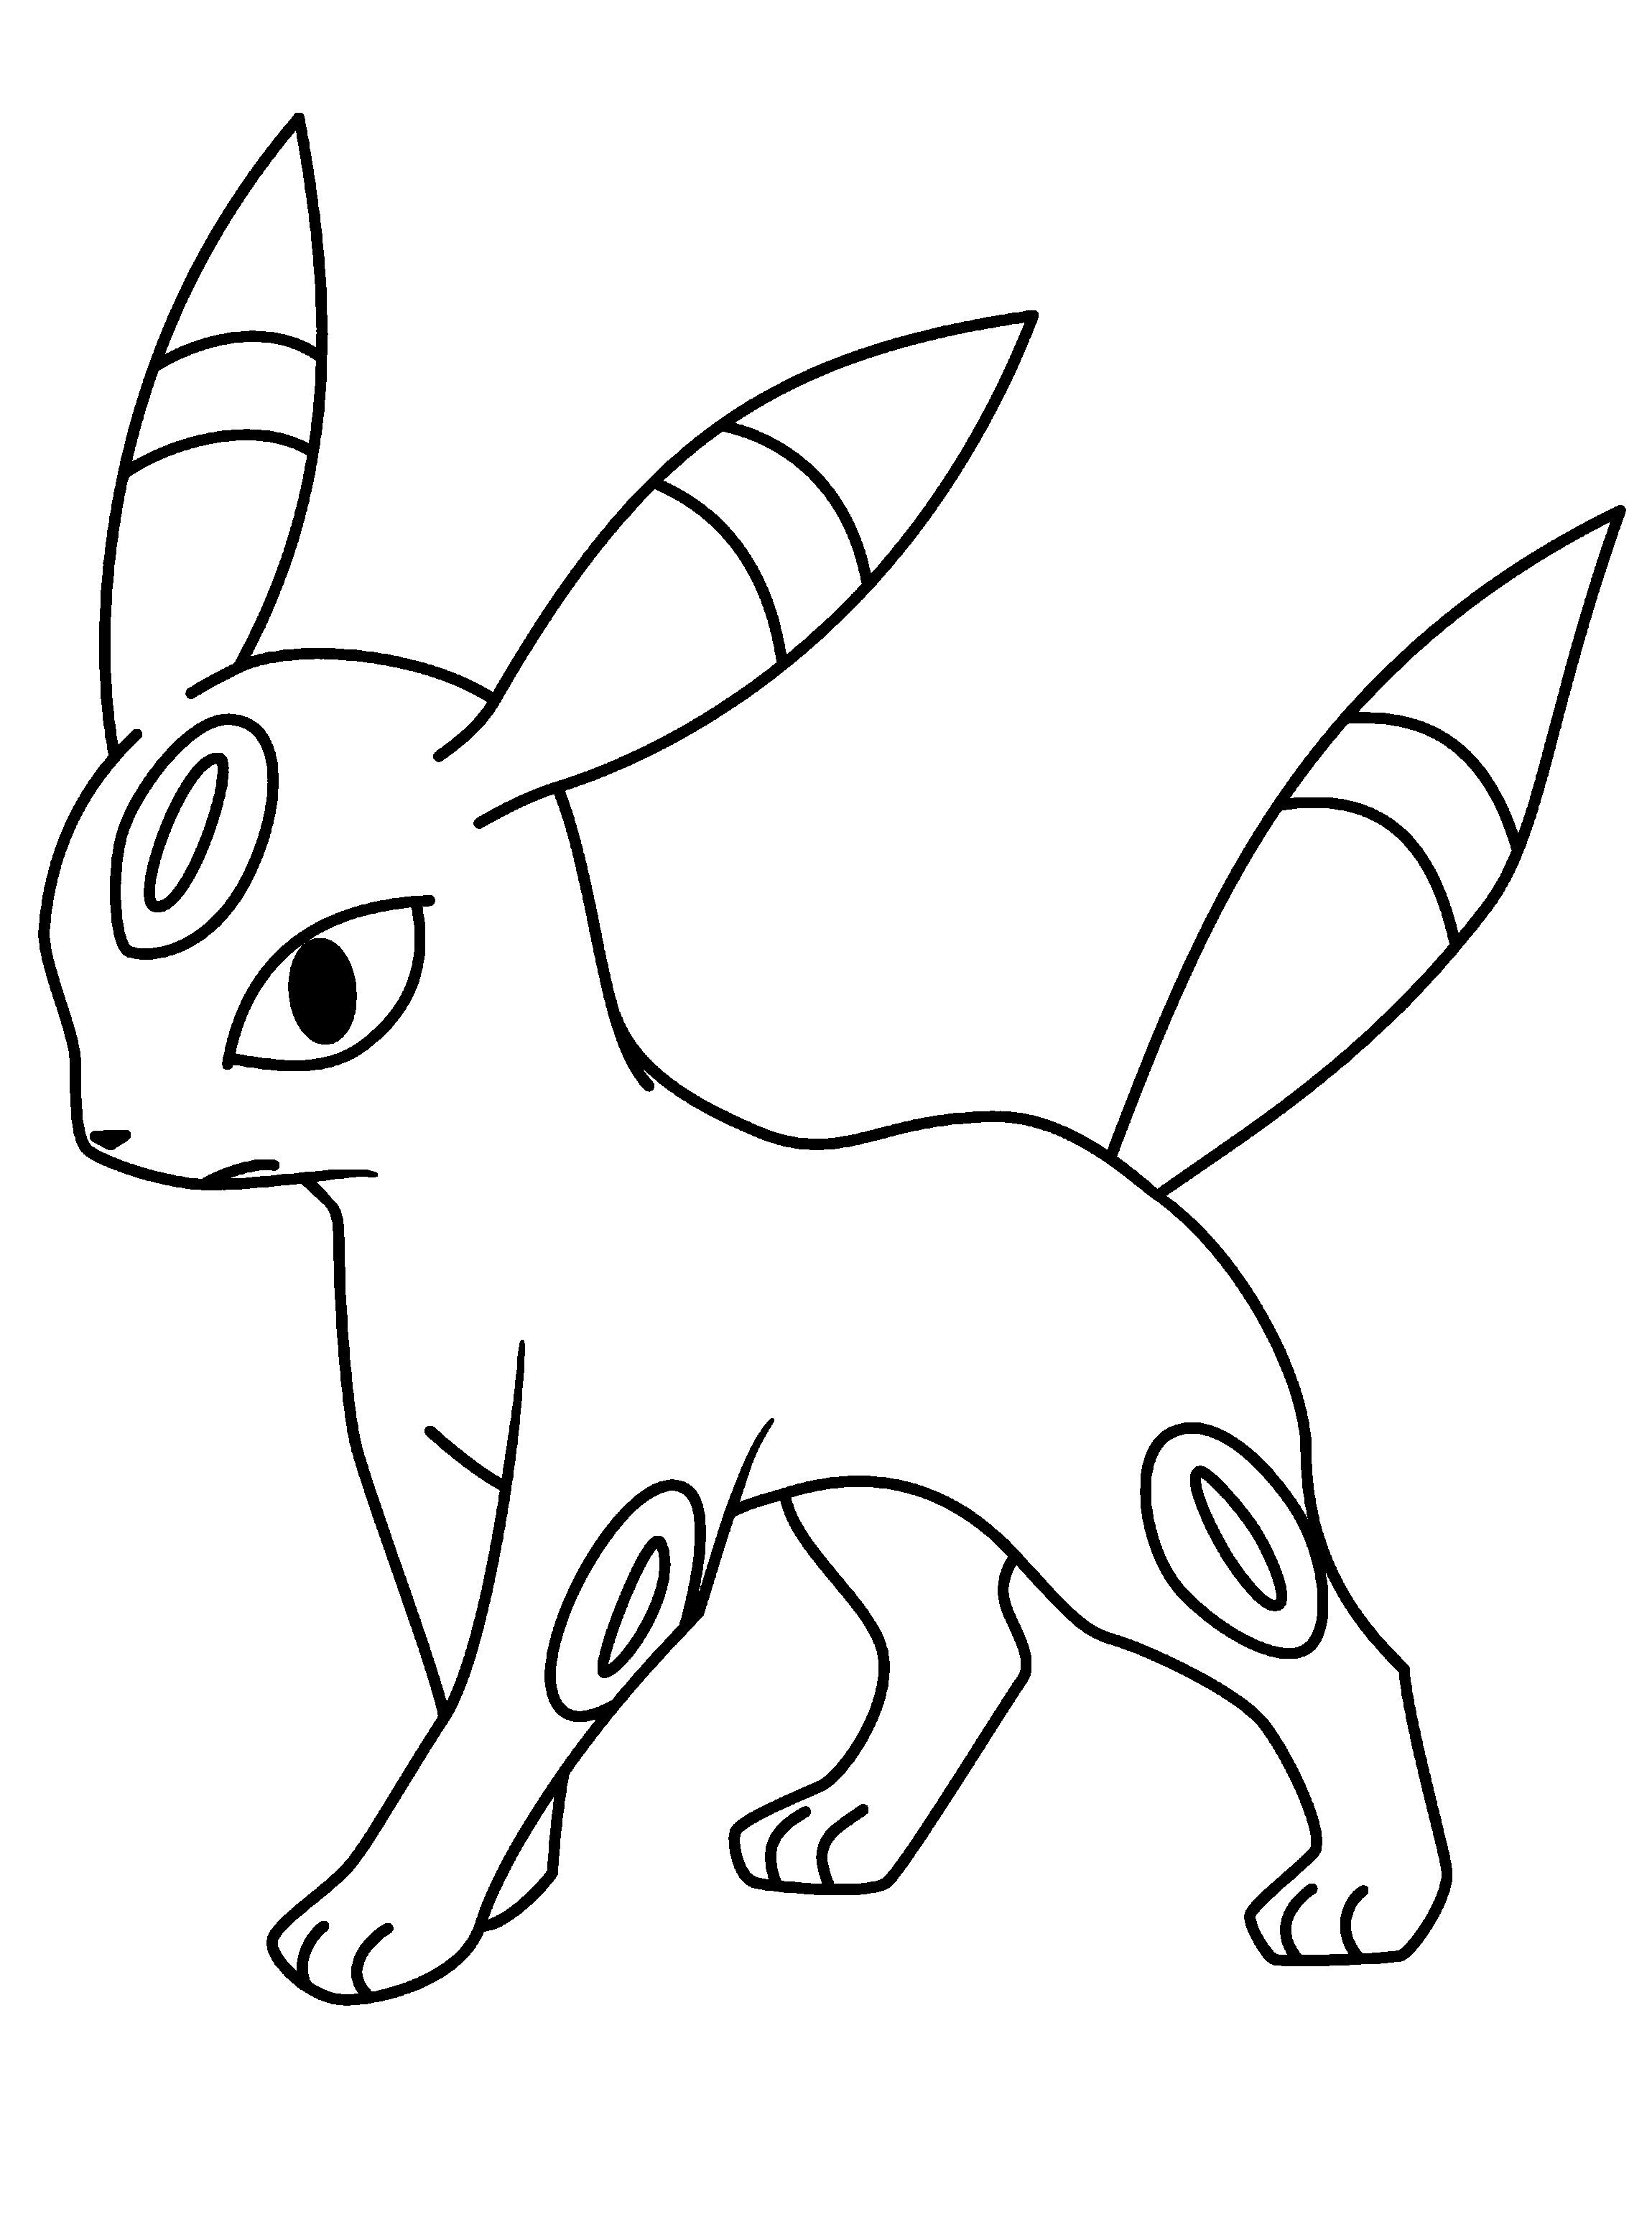 Girls Coloring Pages Colorear Pokemon Dibujos Para Colorear Pokemon Dibujos De Pokemon